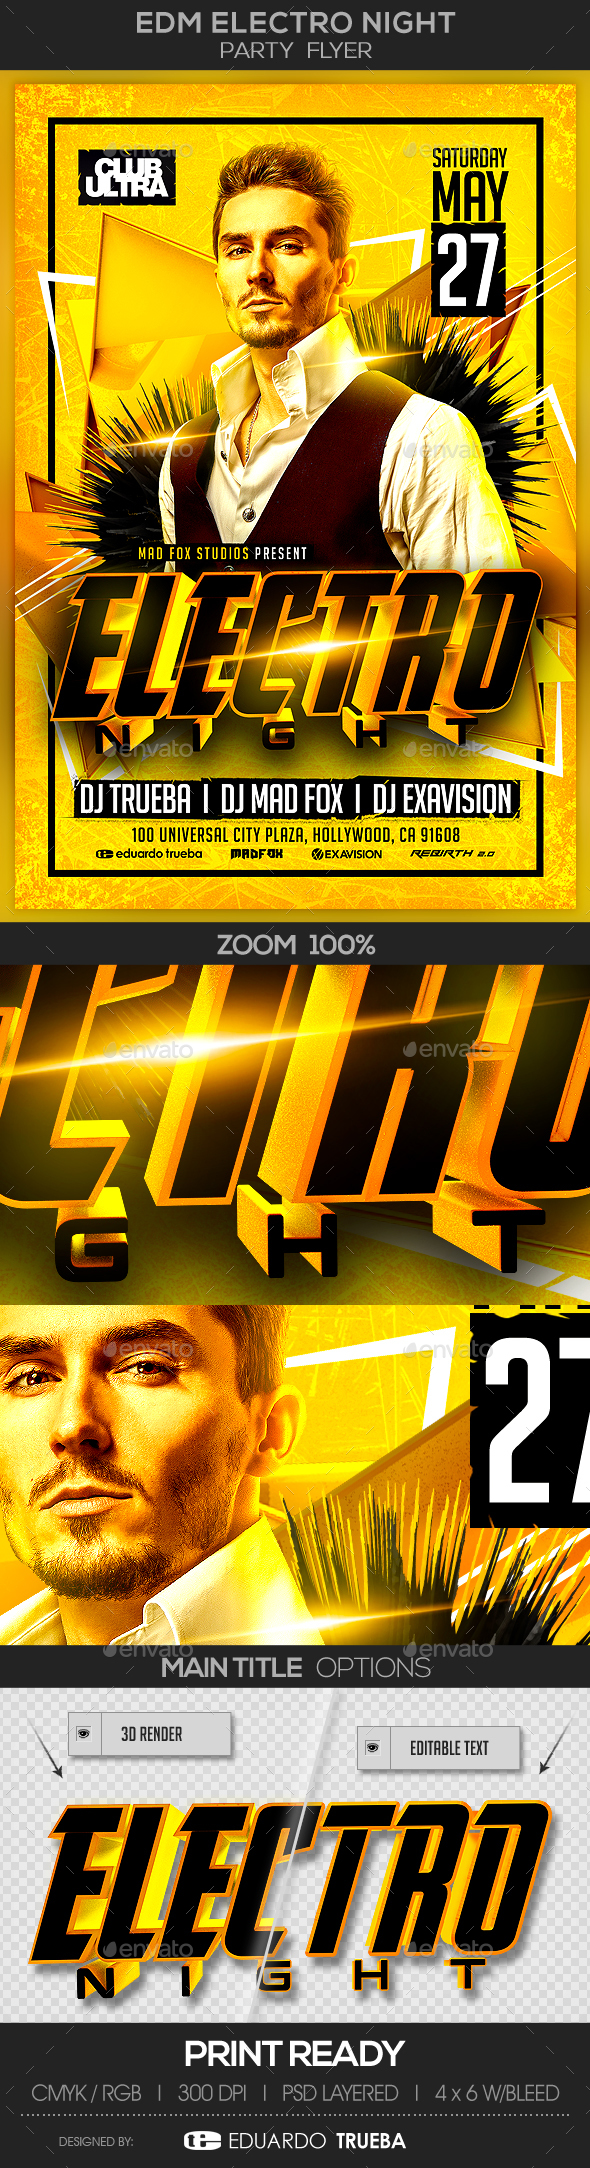 EDM Electro Night Party Flyer - Clubs & Parties Events